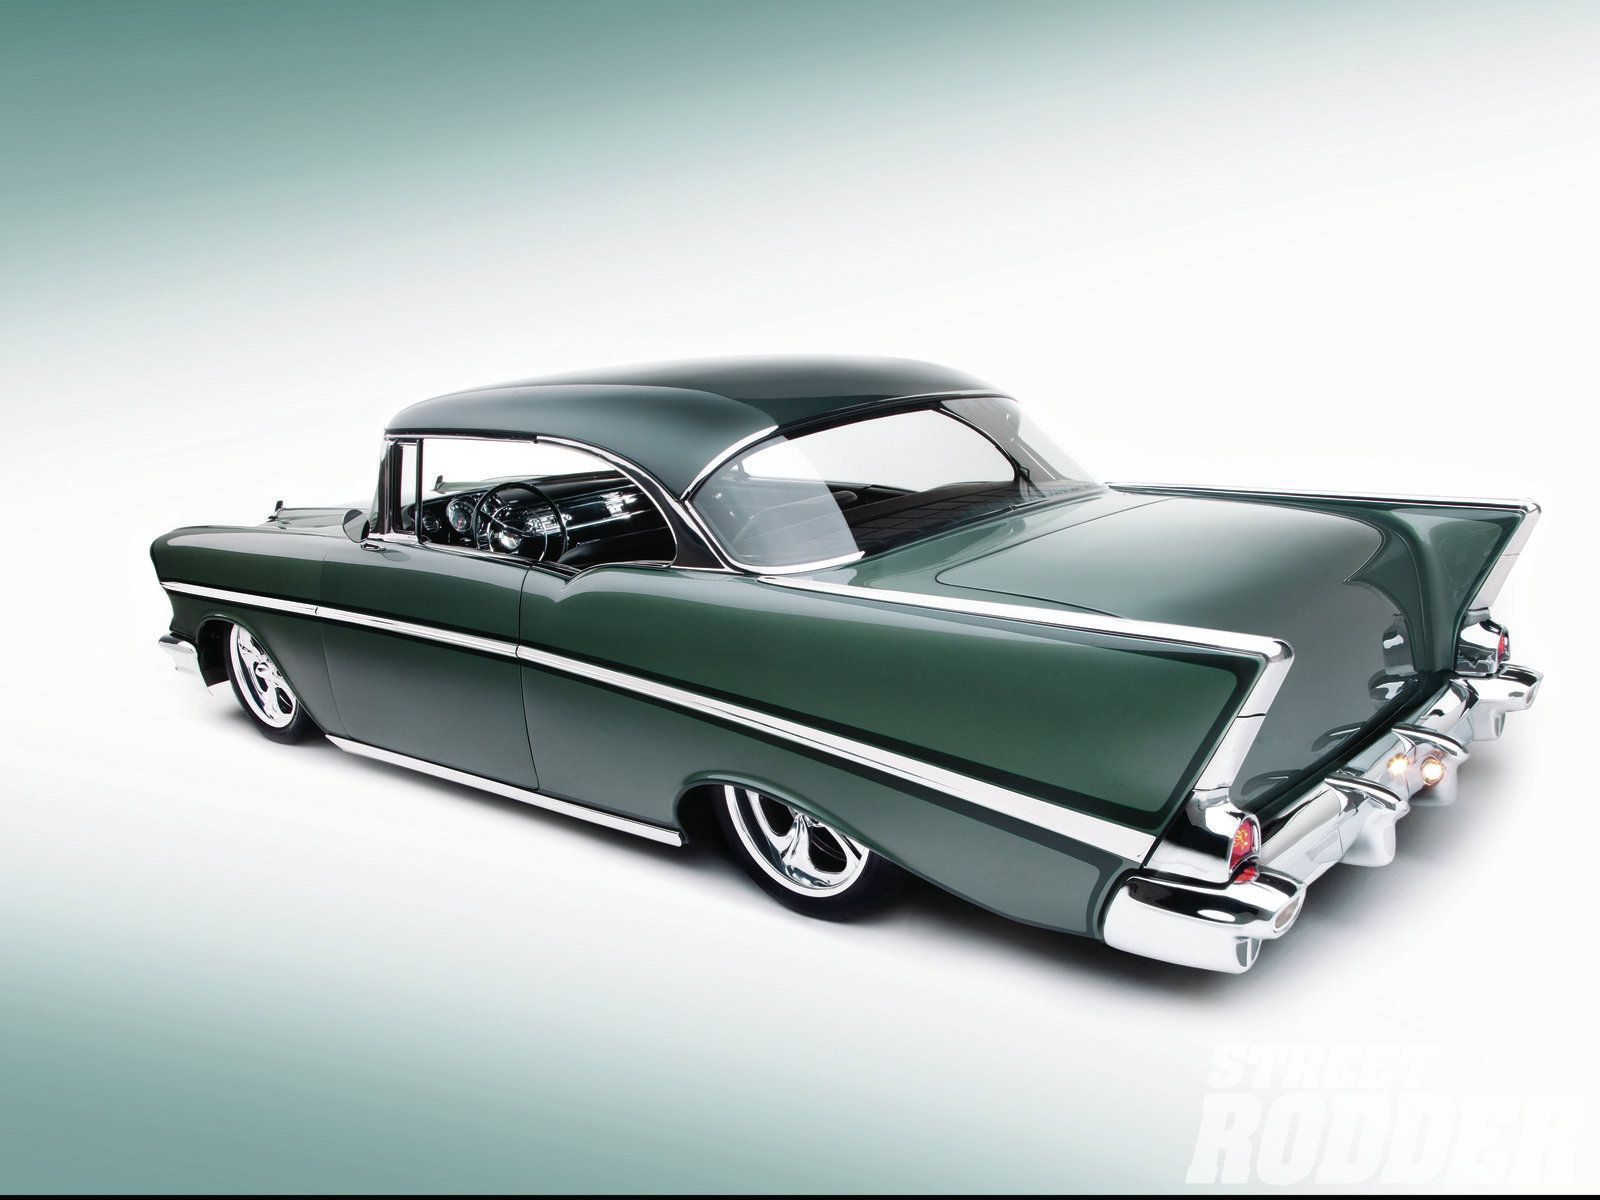 1957 Chevrolet Bel Airs Are A Hot Commodity Chevy High